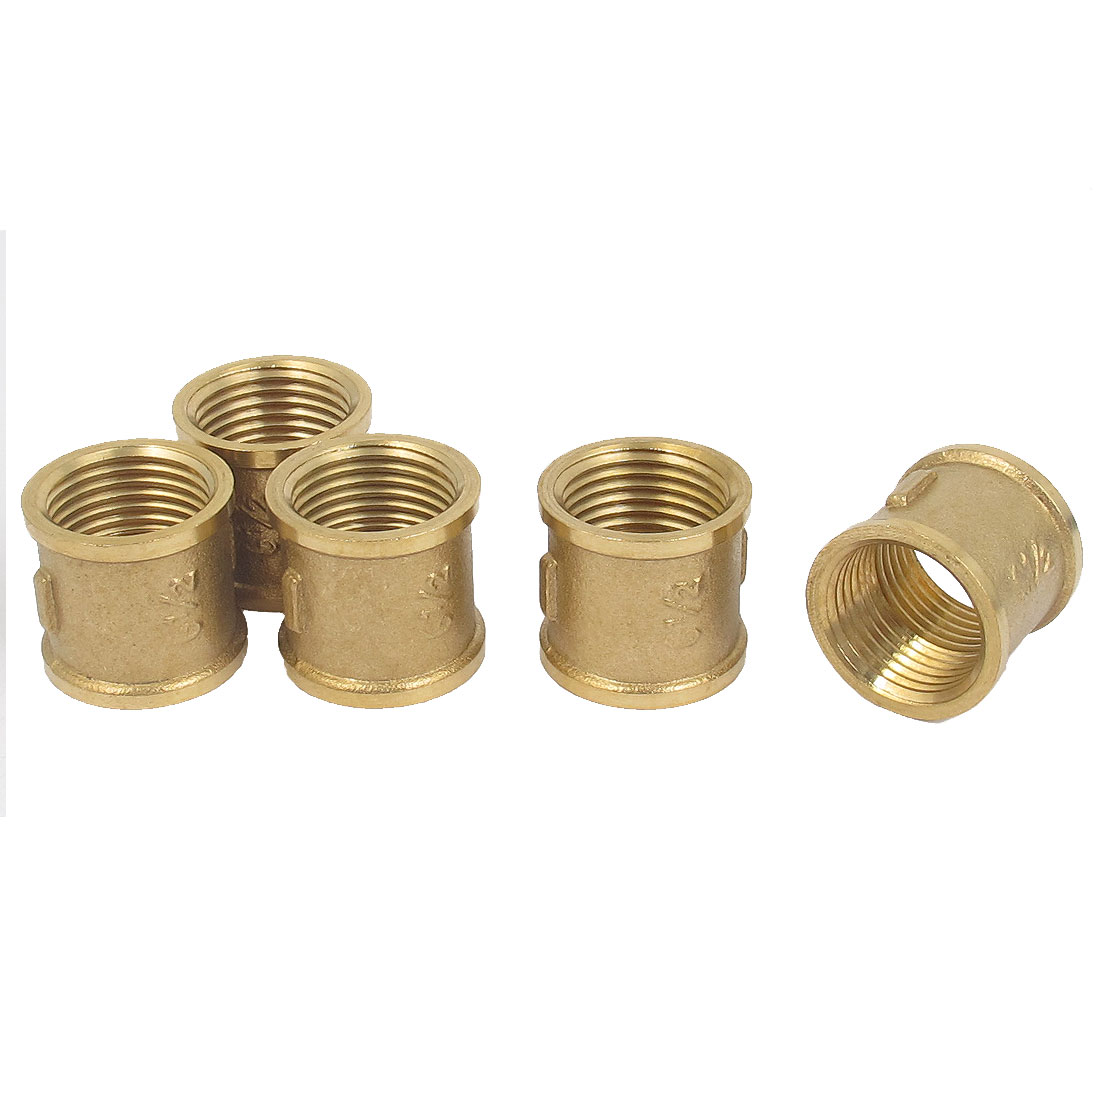 1/2BSP Female Thread Brass Water Pipe Coupling Fitting Connector Gold Tone 5pcs